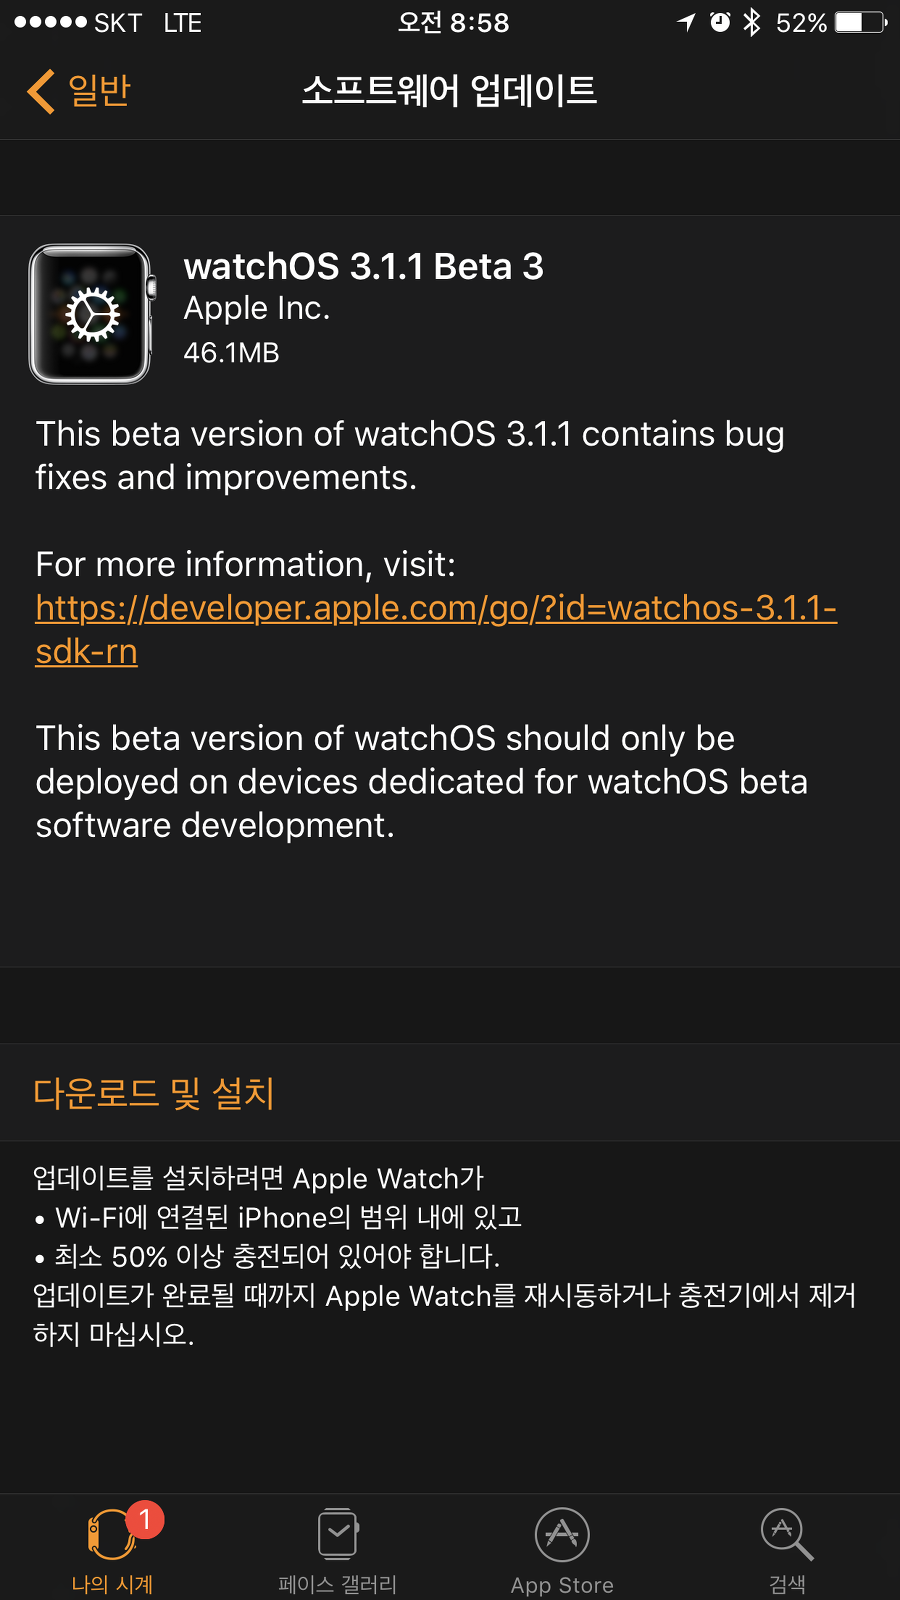 watchOS3.1.1beta3